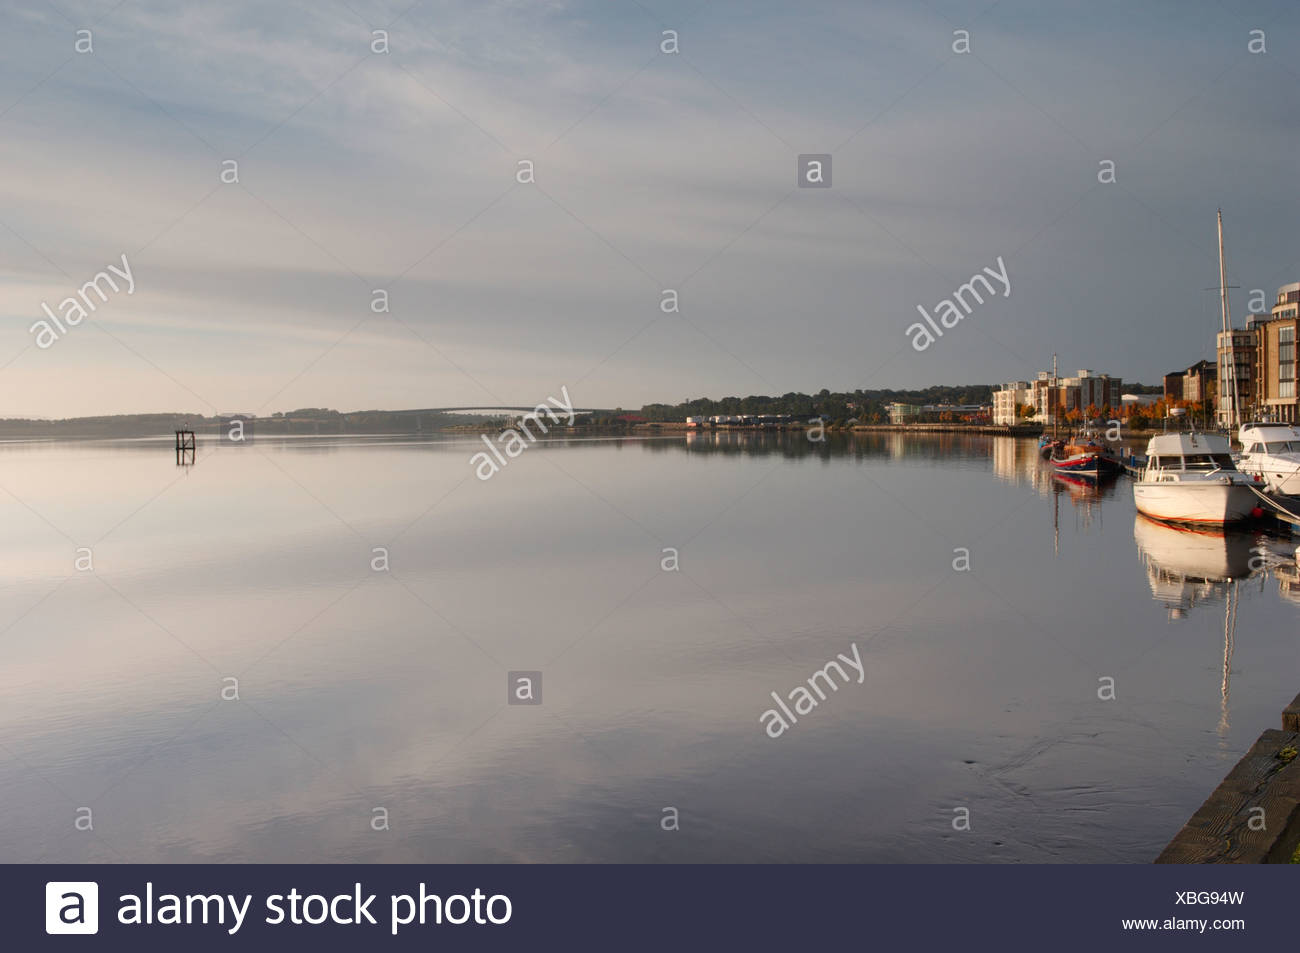 Northern Ireland, Causeway Coast, Foyle Harbour and boats - Stock Image